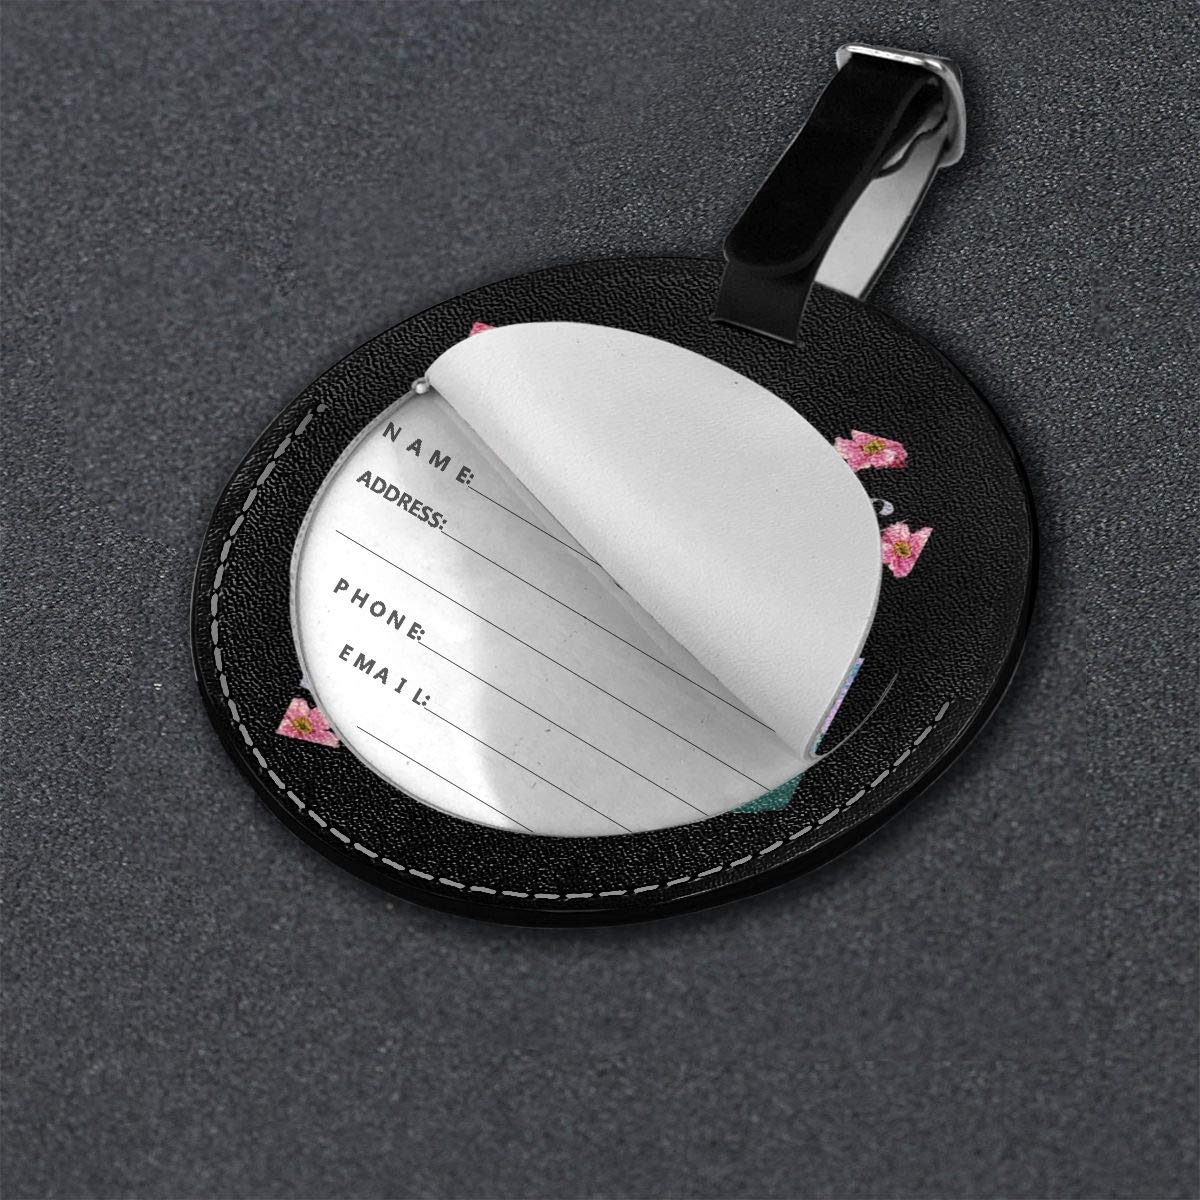 Melvins Travel Leather Round Luggage Tags Suitcase Labels Bag